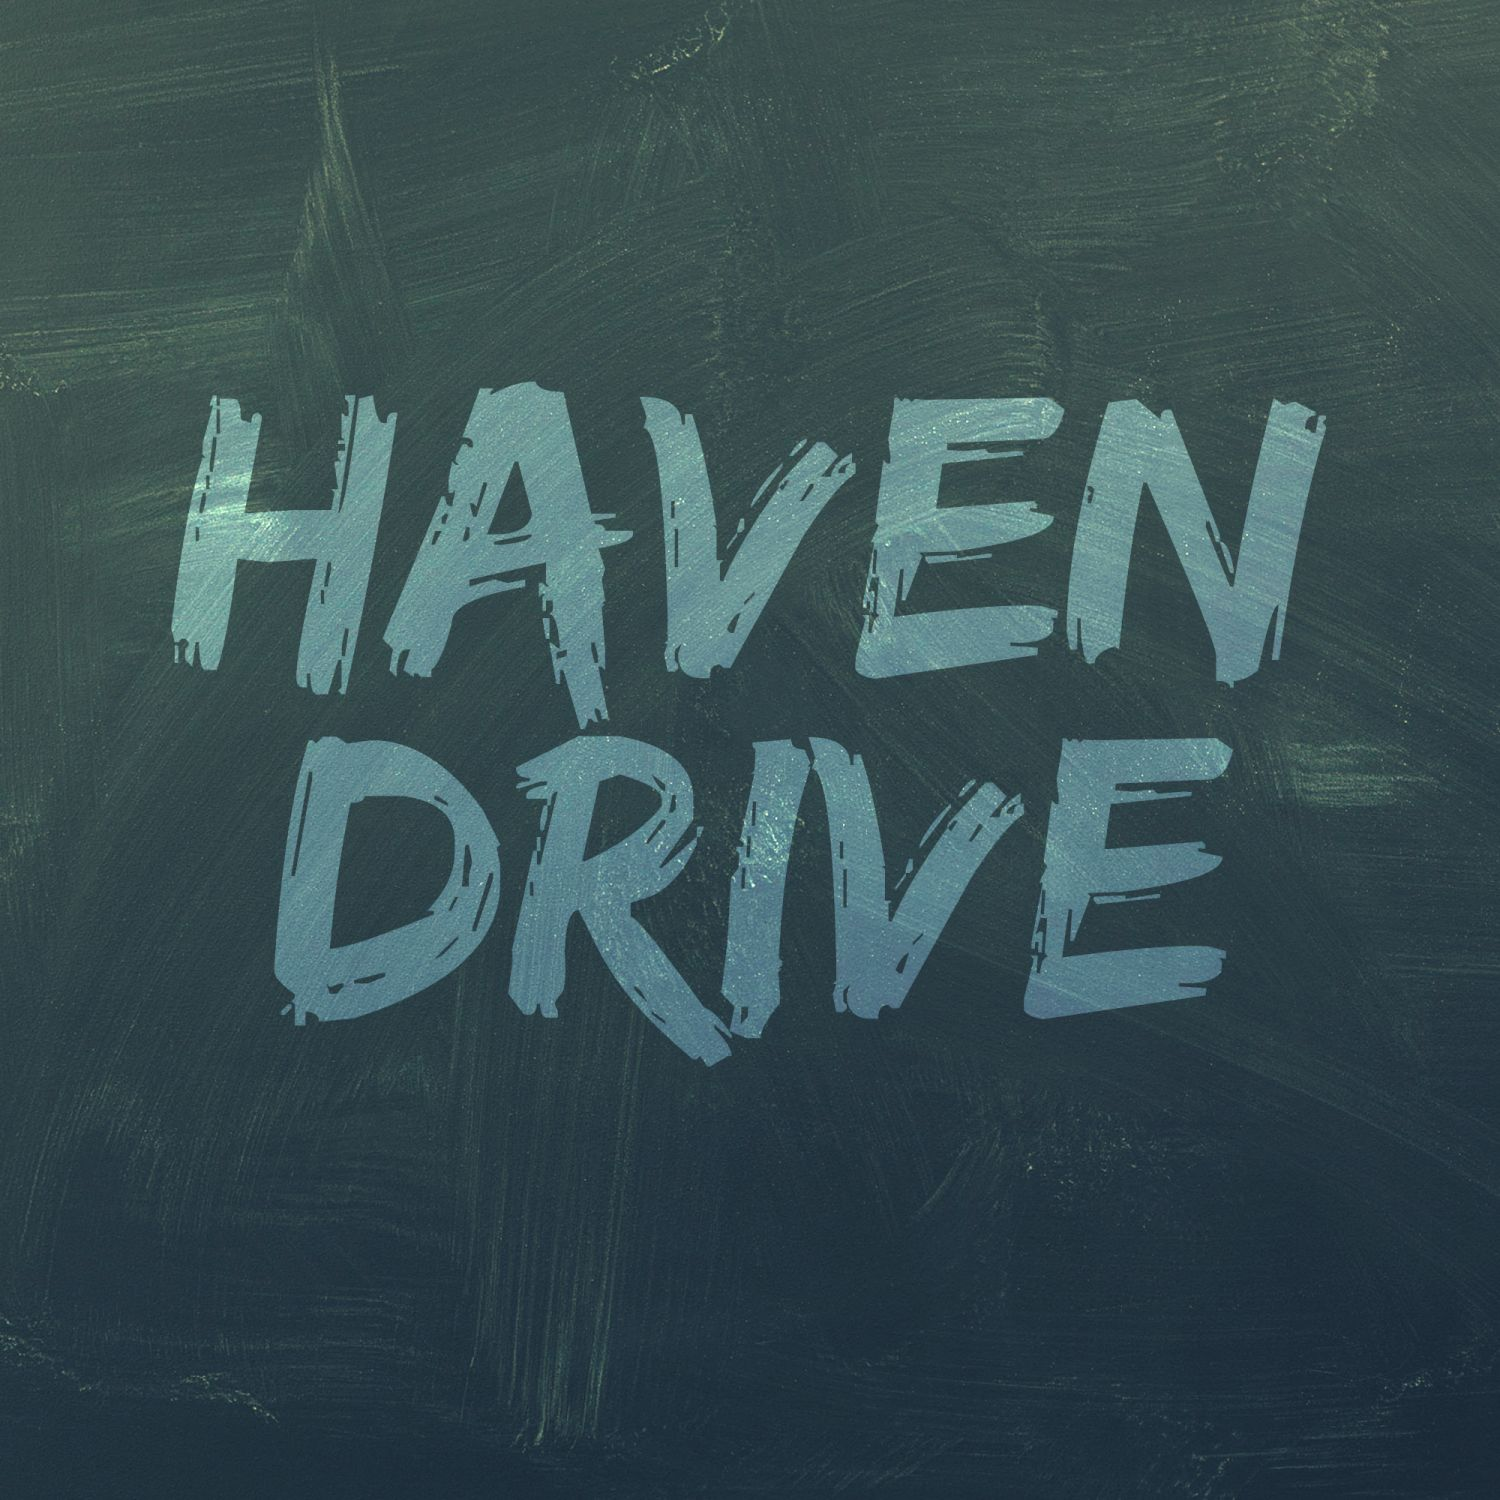 & Lights Down Low by Haven Drive | Song License azcodes.com